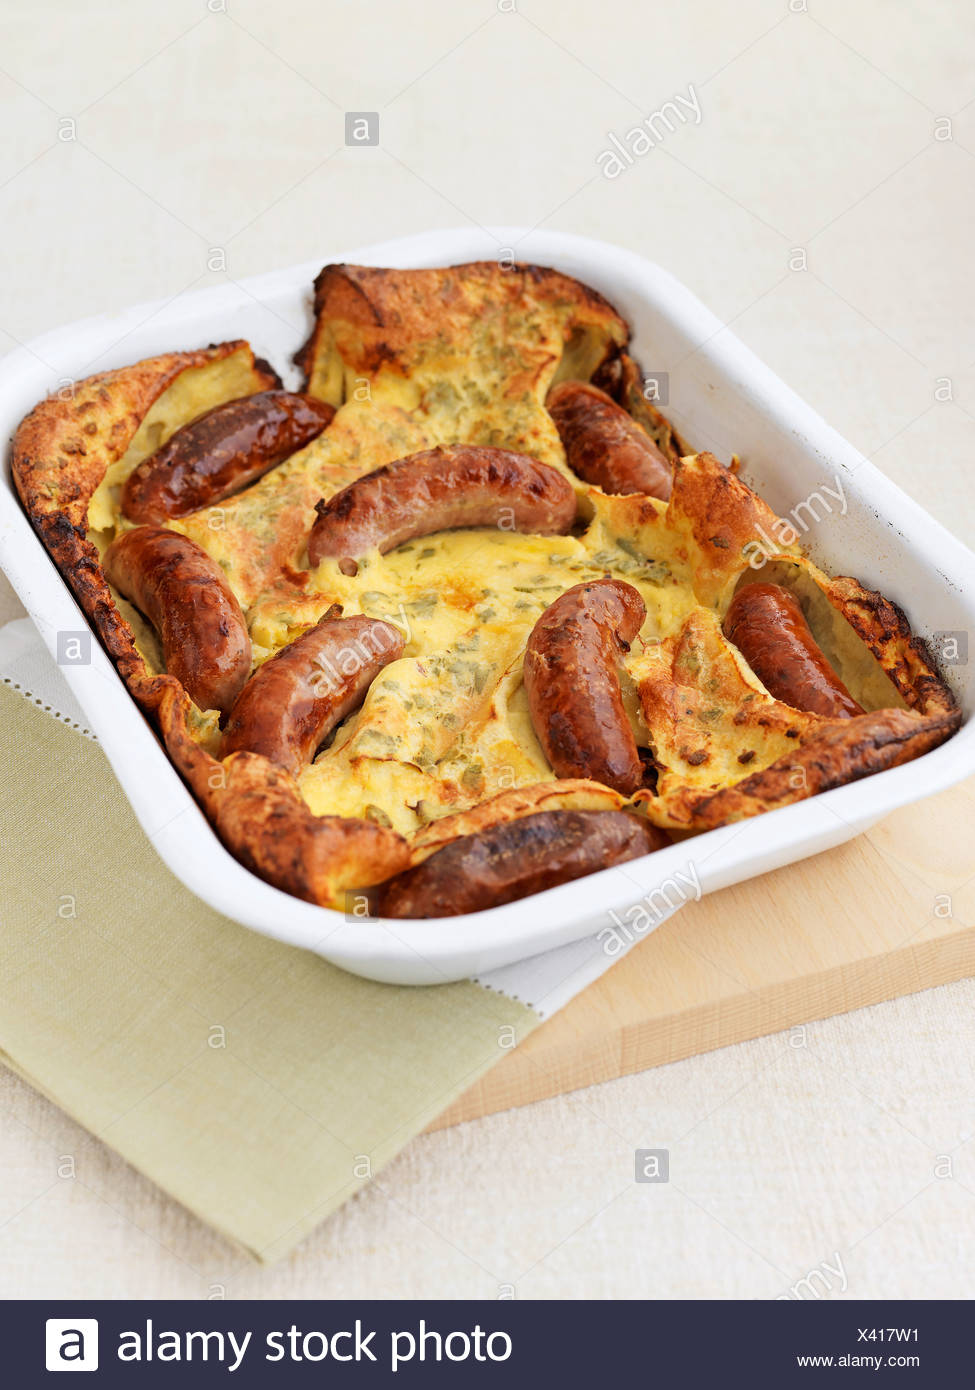 Toad in the hole - Stock Image